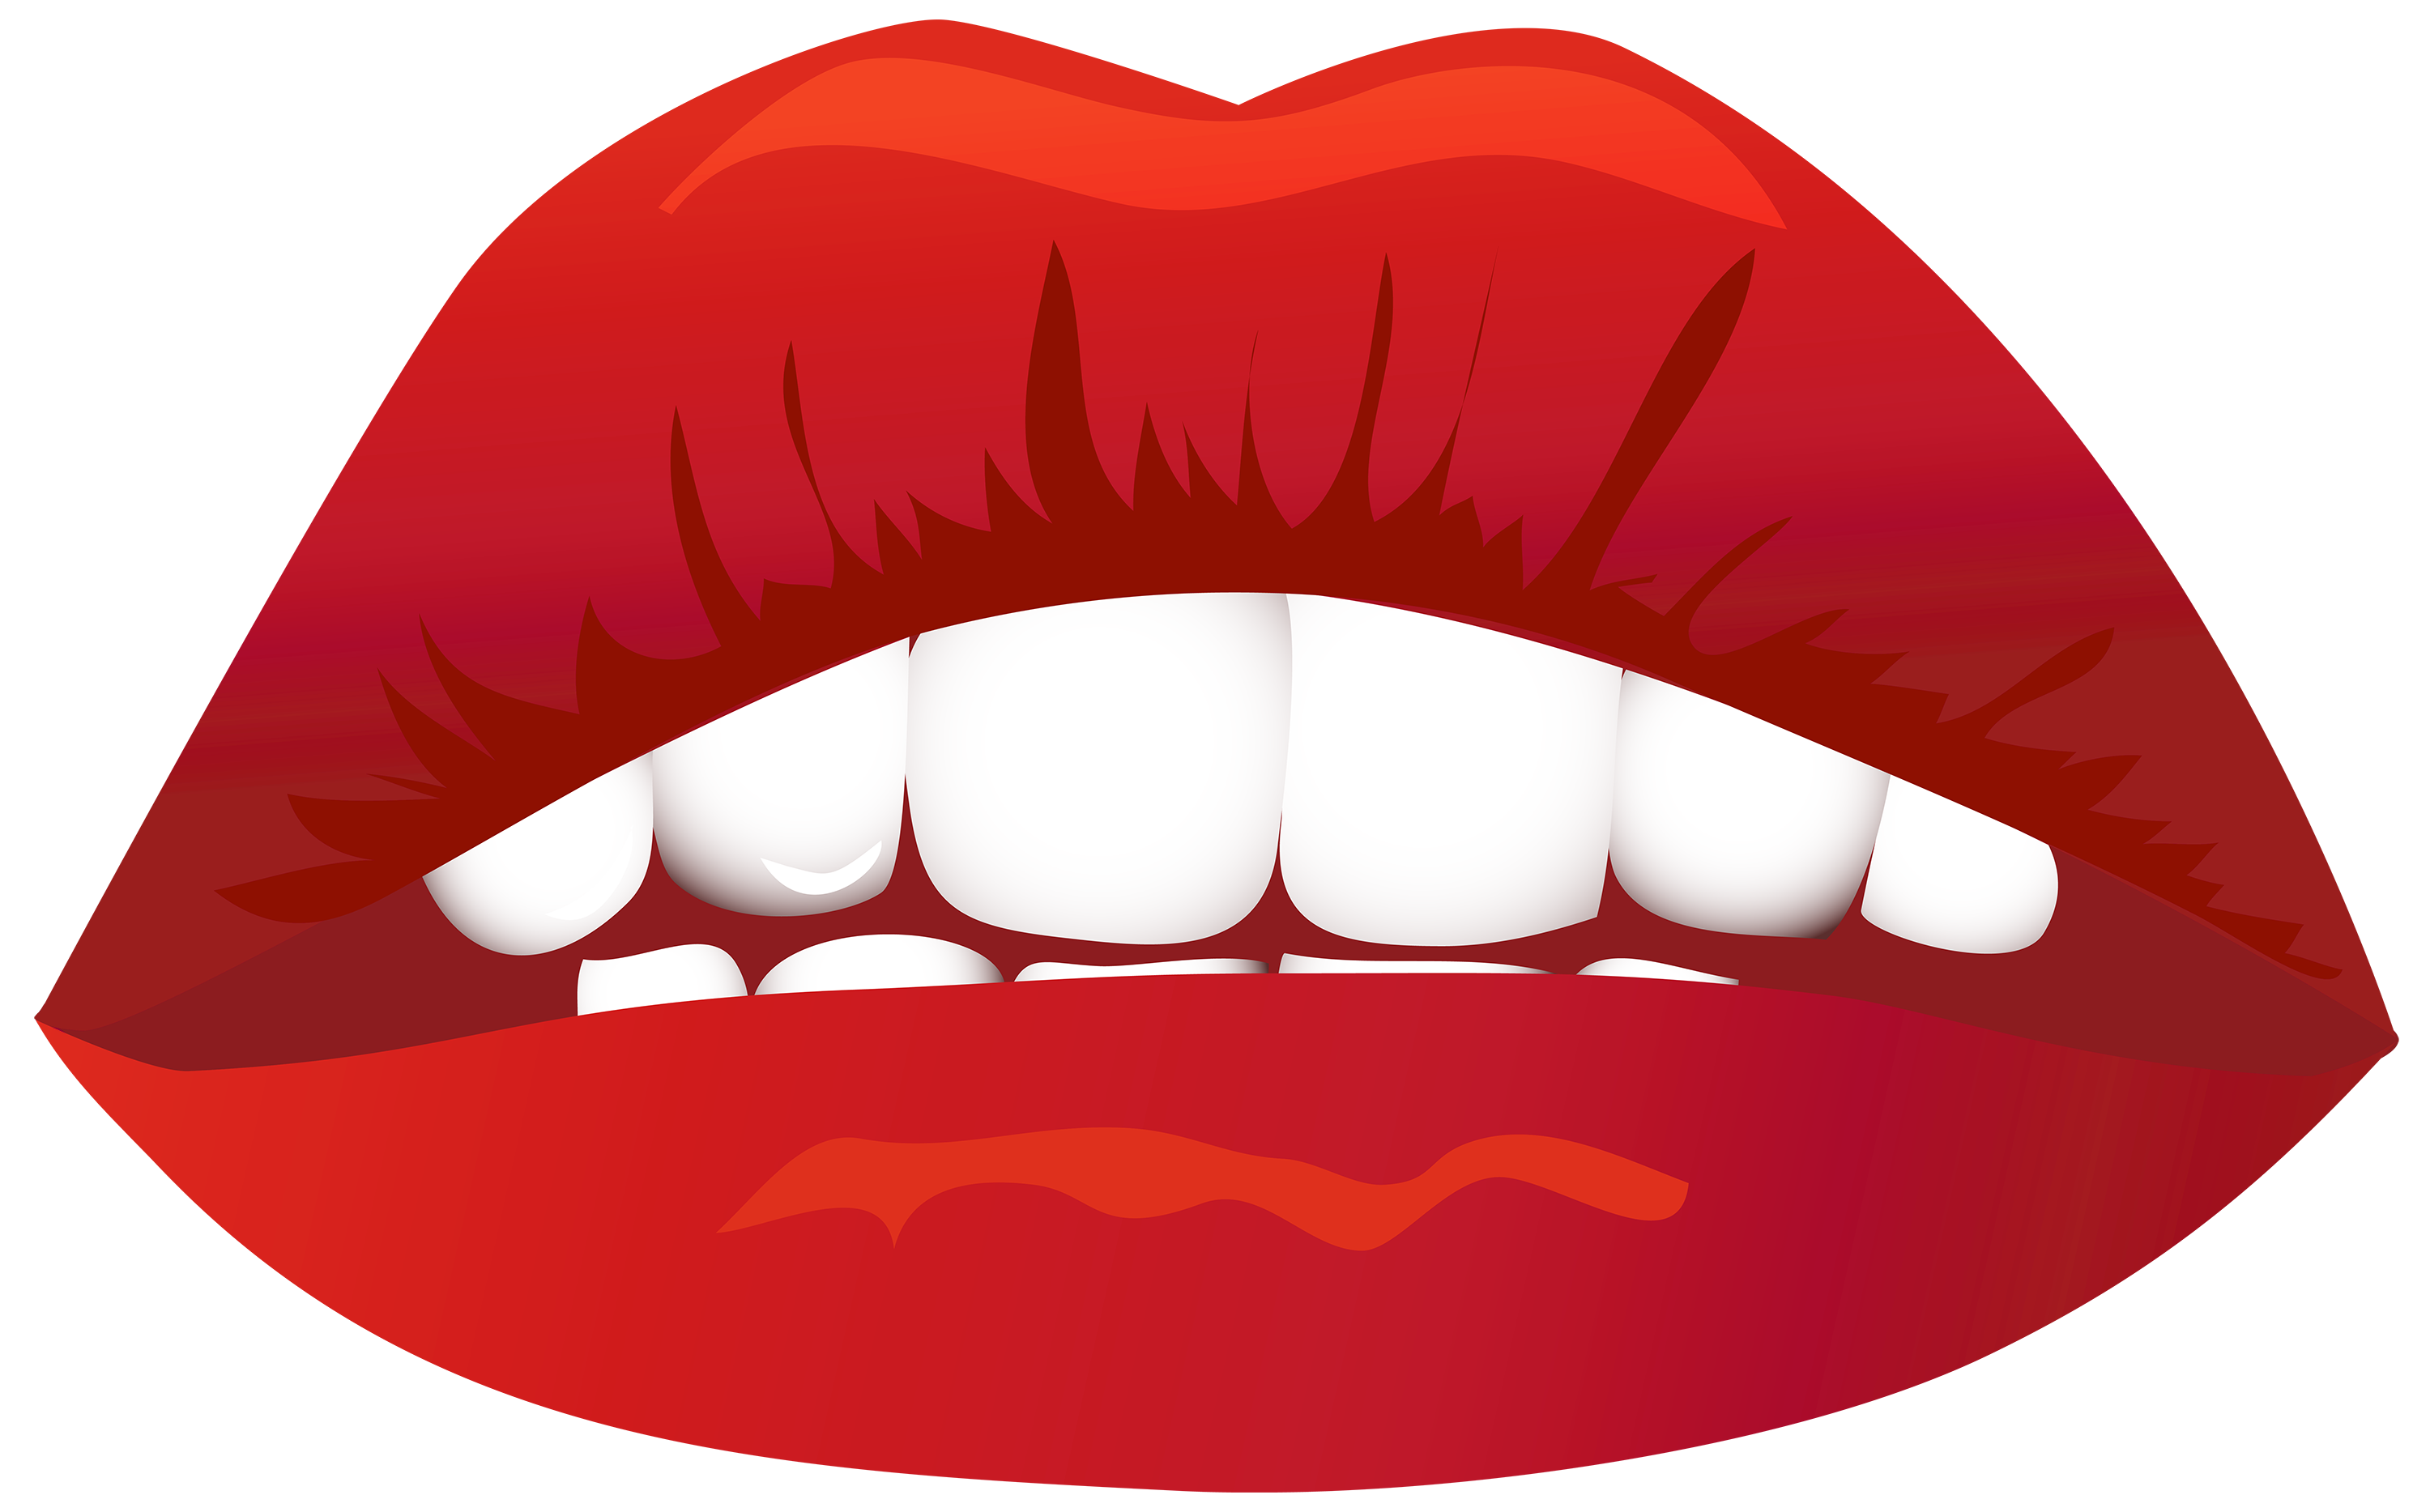 Lips clipart #4, Download drawings